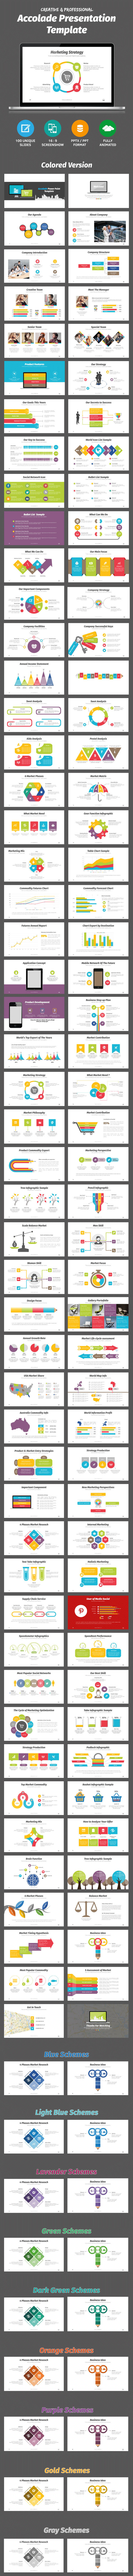 GraphicRiver Accolade Presentation Template 11450694